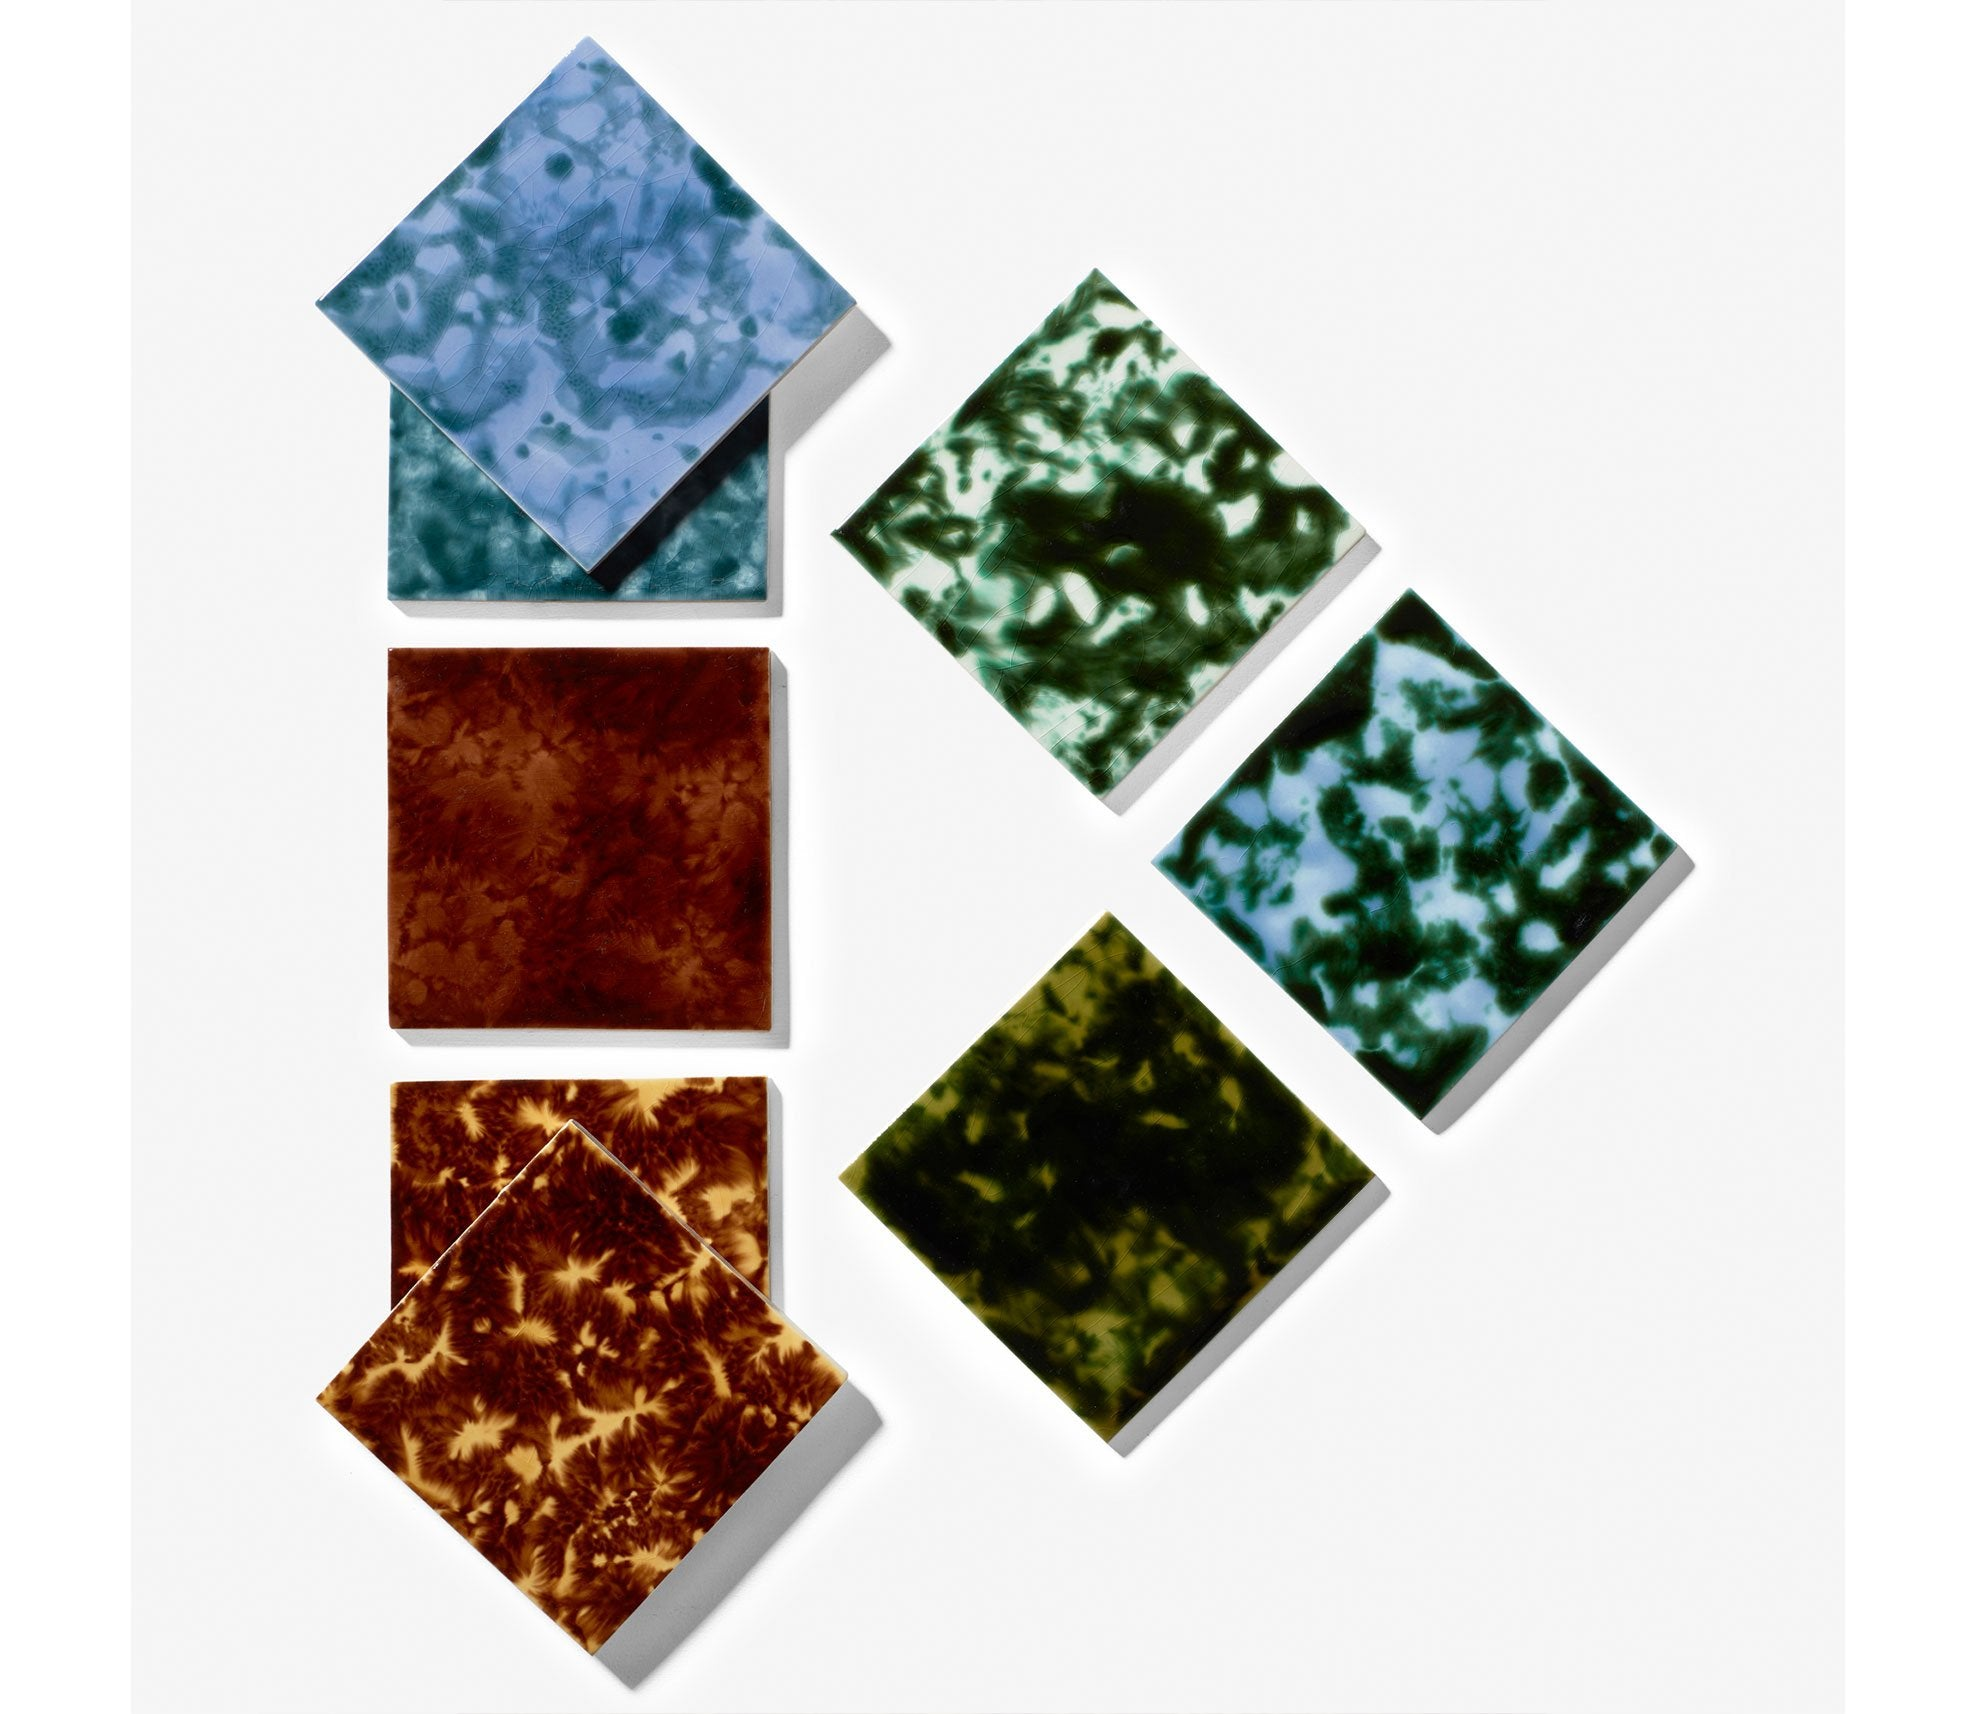 Mottled Tiles Product Image 2